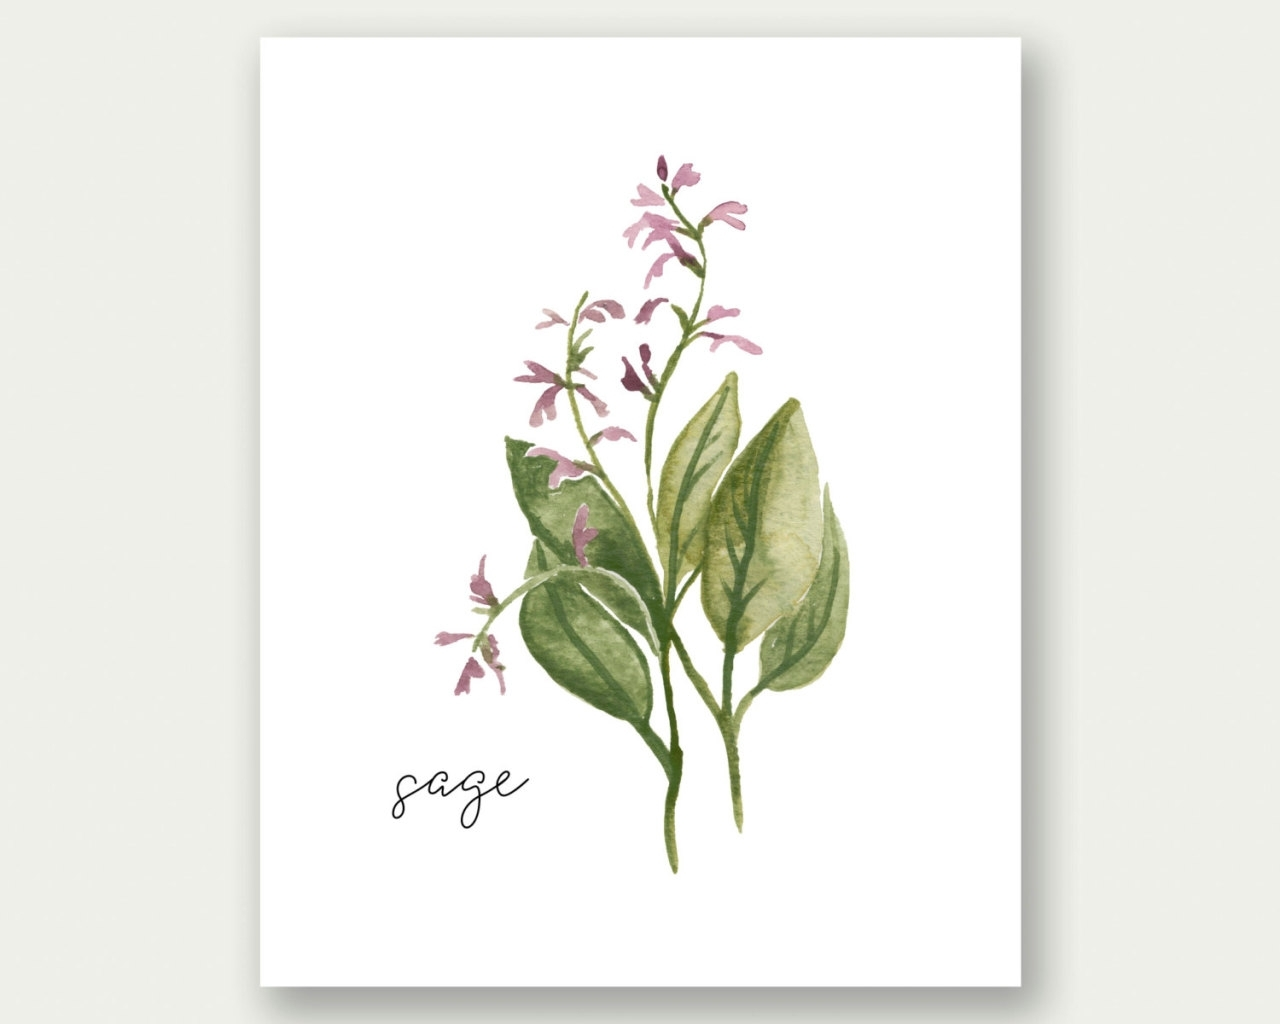 Watercolor Landcolor Skycolor — Herb Wall Art, Herb Print, Sage Wall With Regard To Latest Herb Wall Art (View 6 of 20)